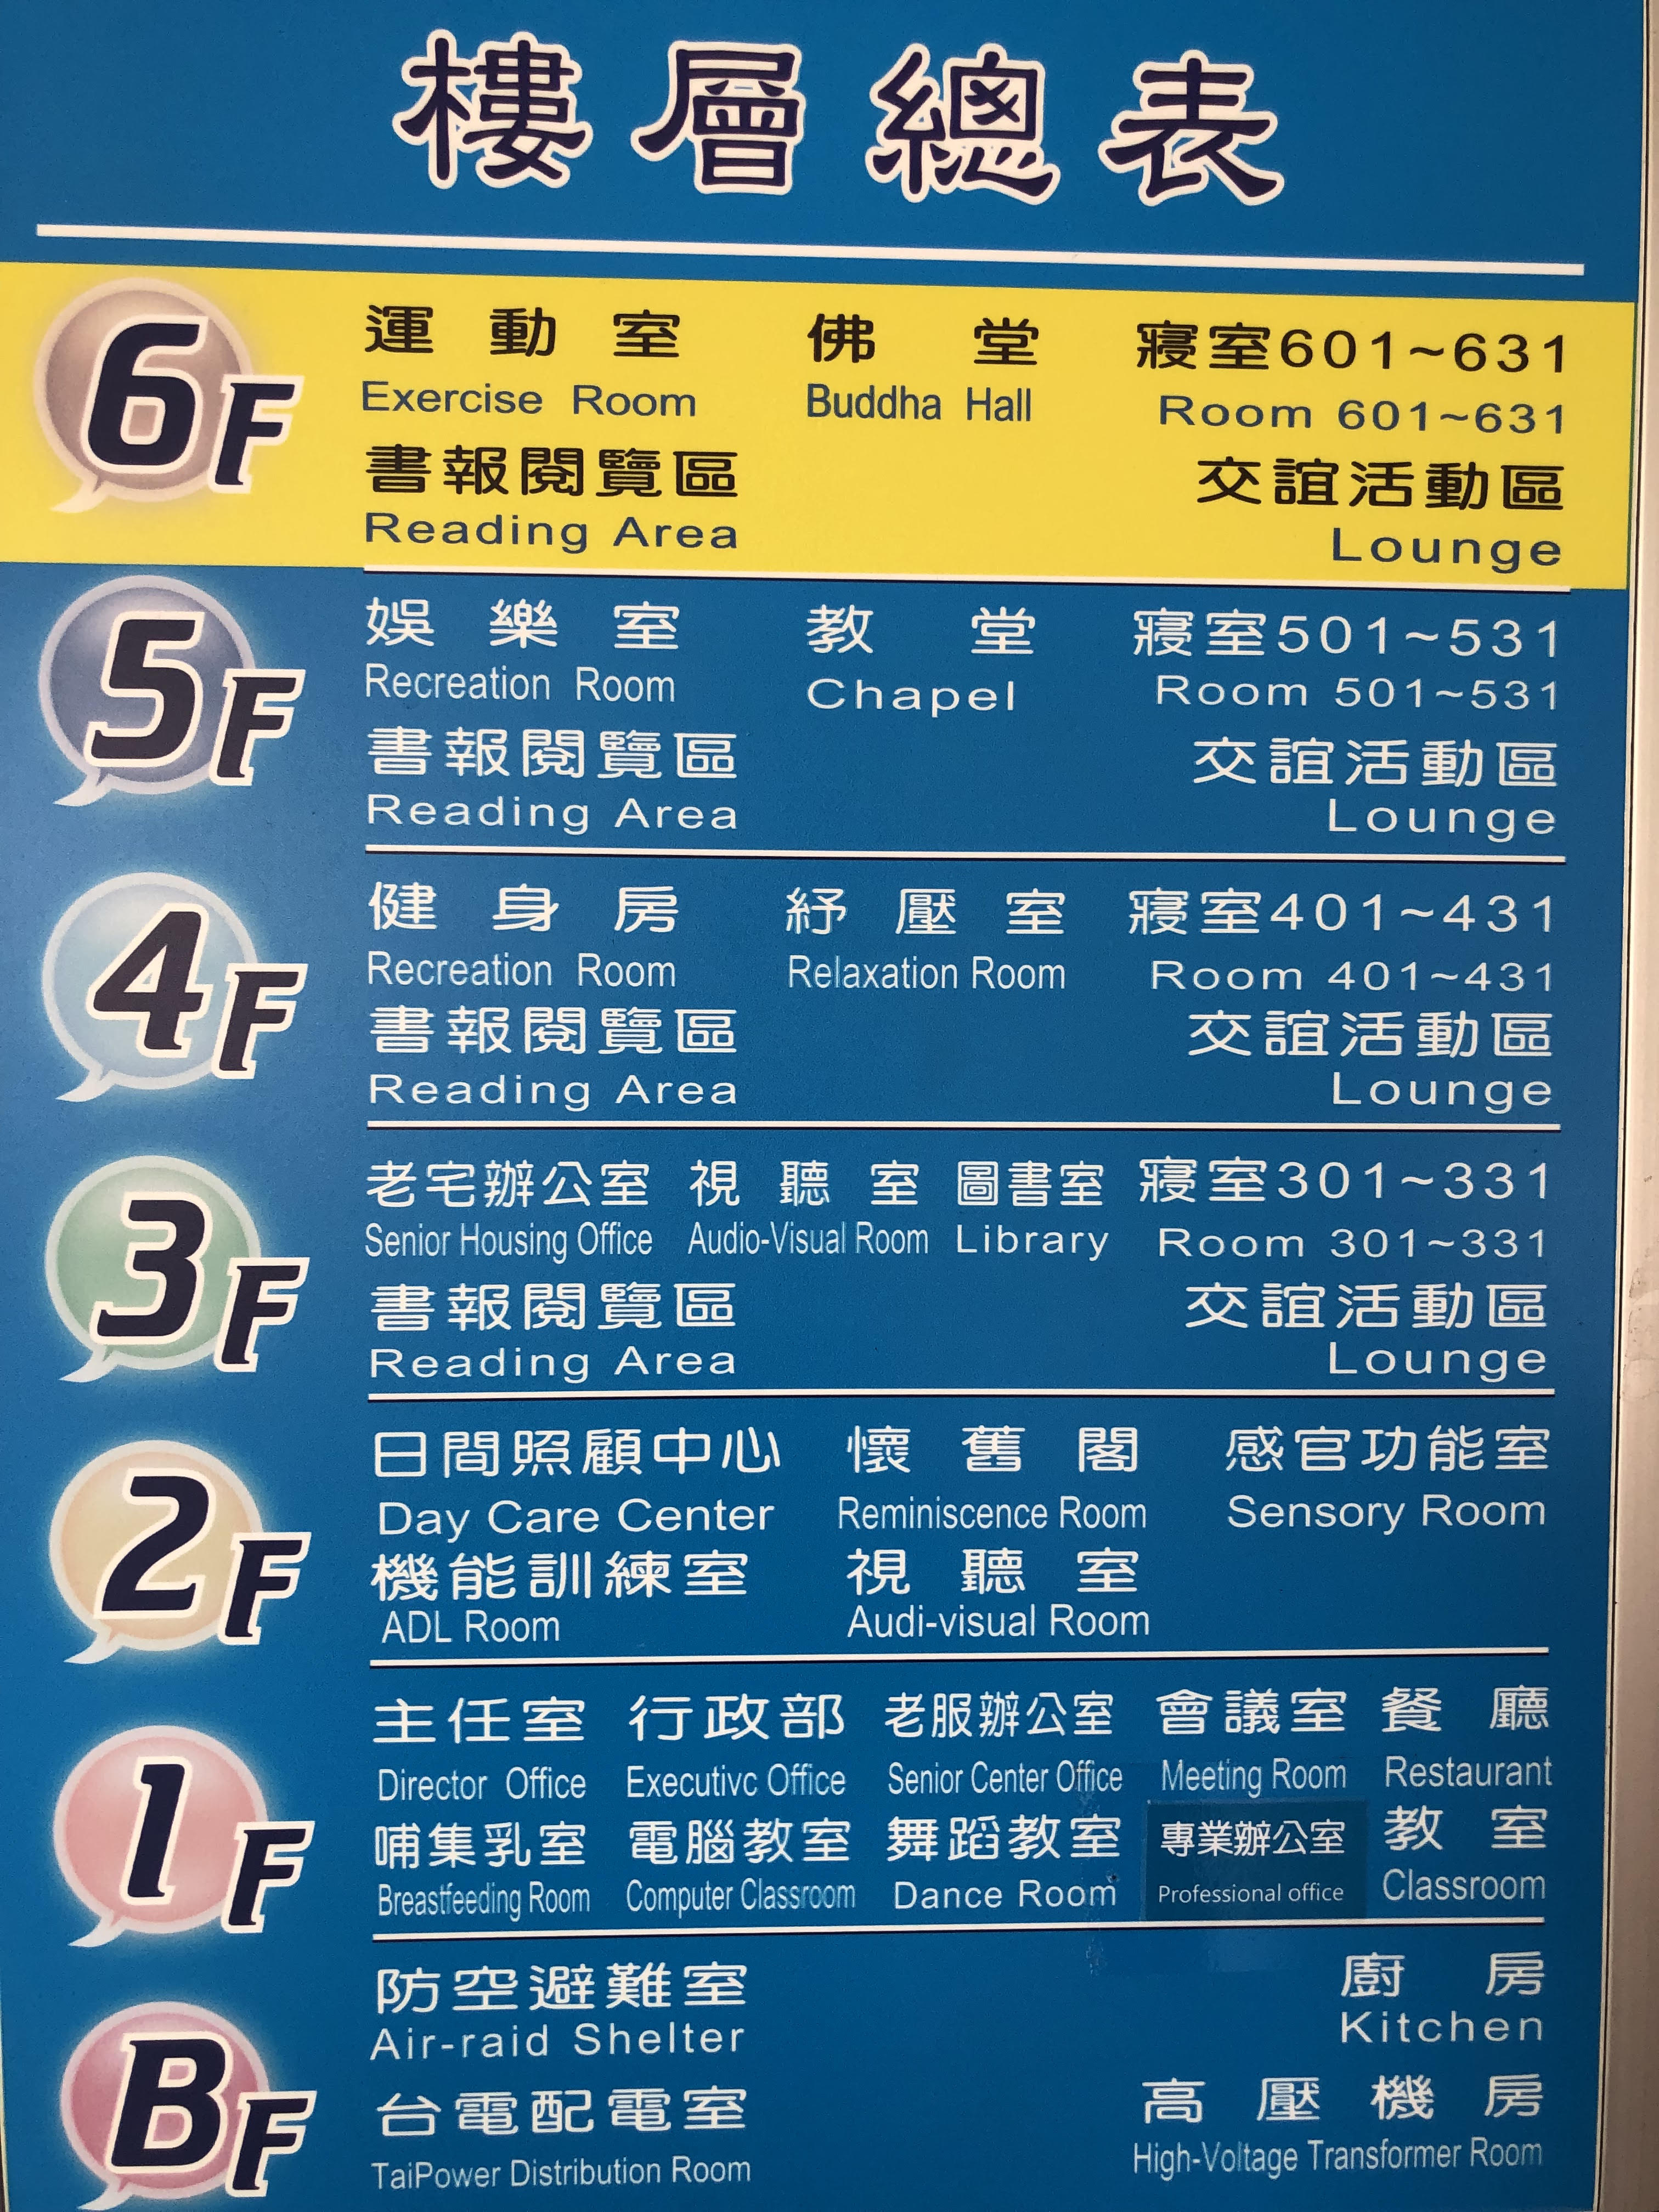 Poster at the Seniors Housing and Service Centre in Taiwan